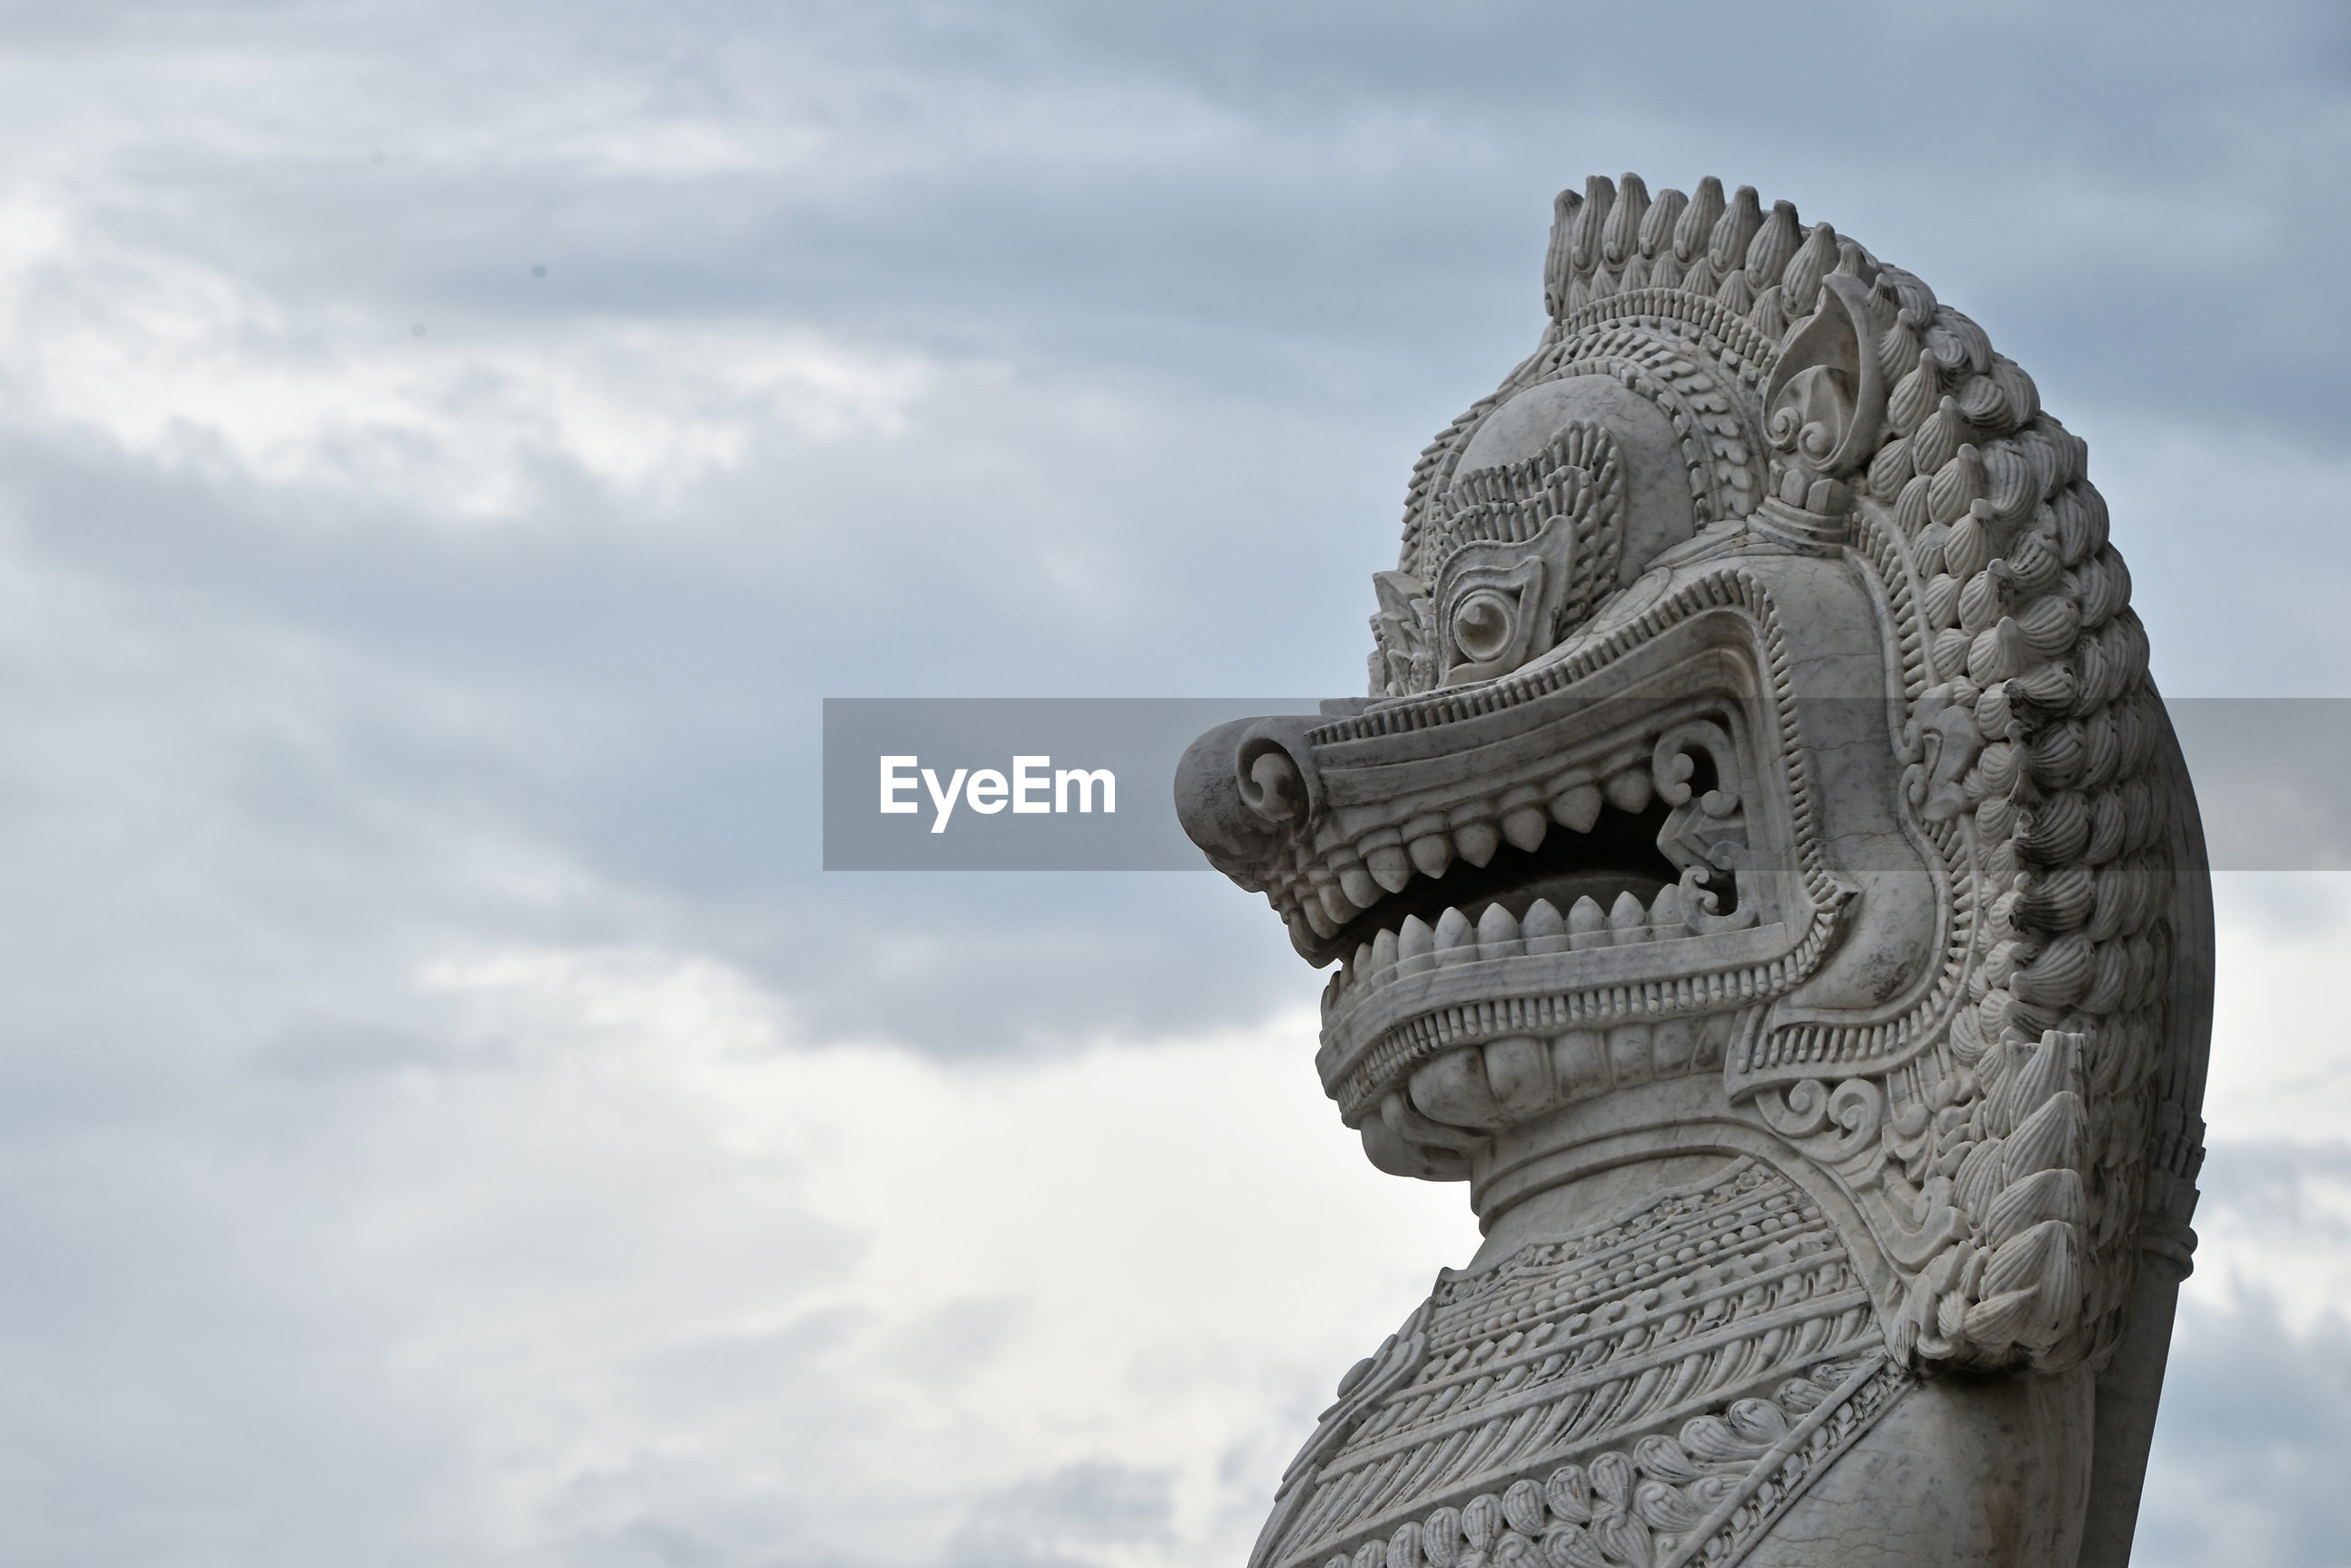 Statue against cloudy sky